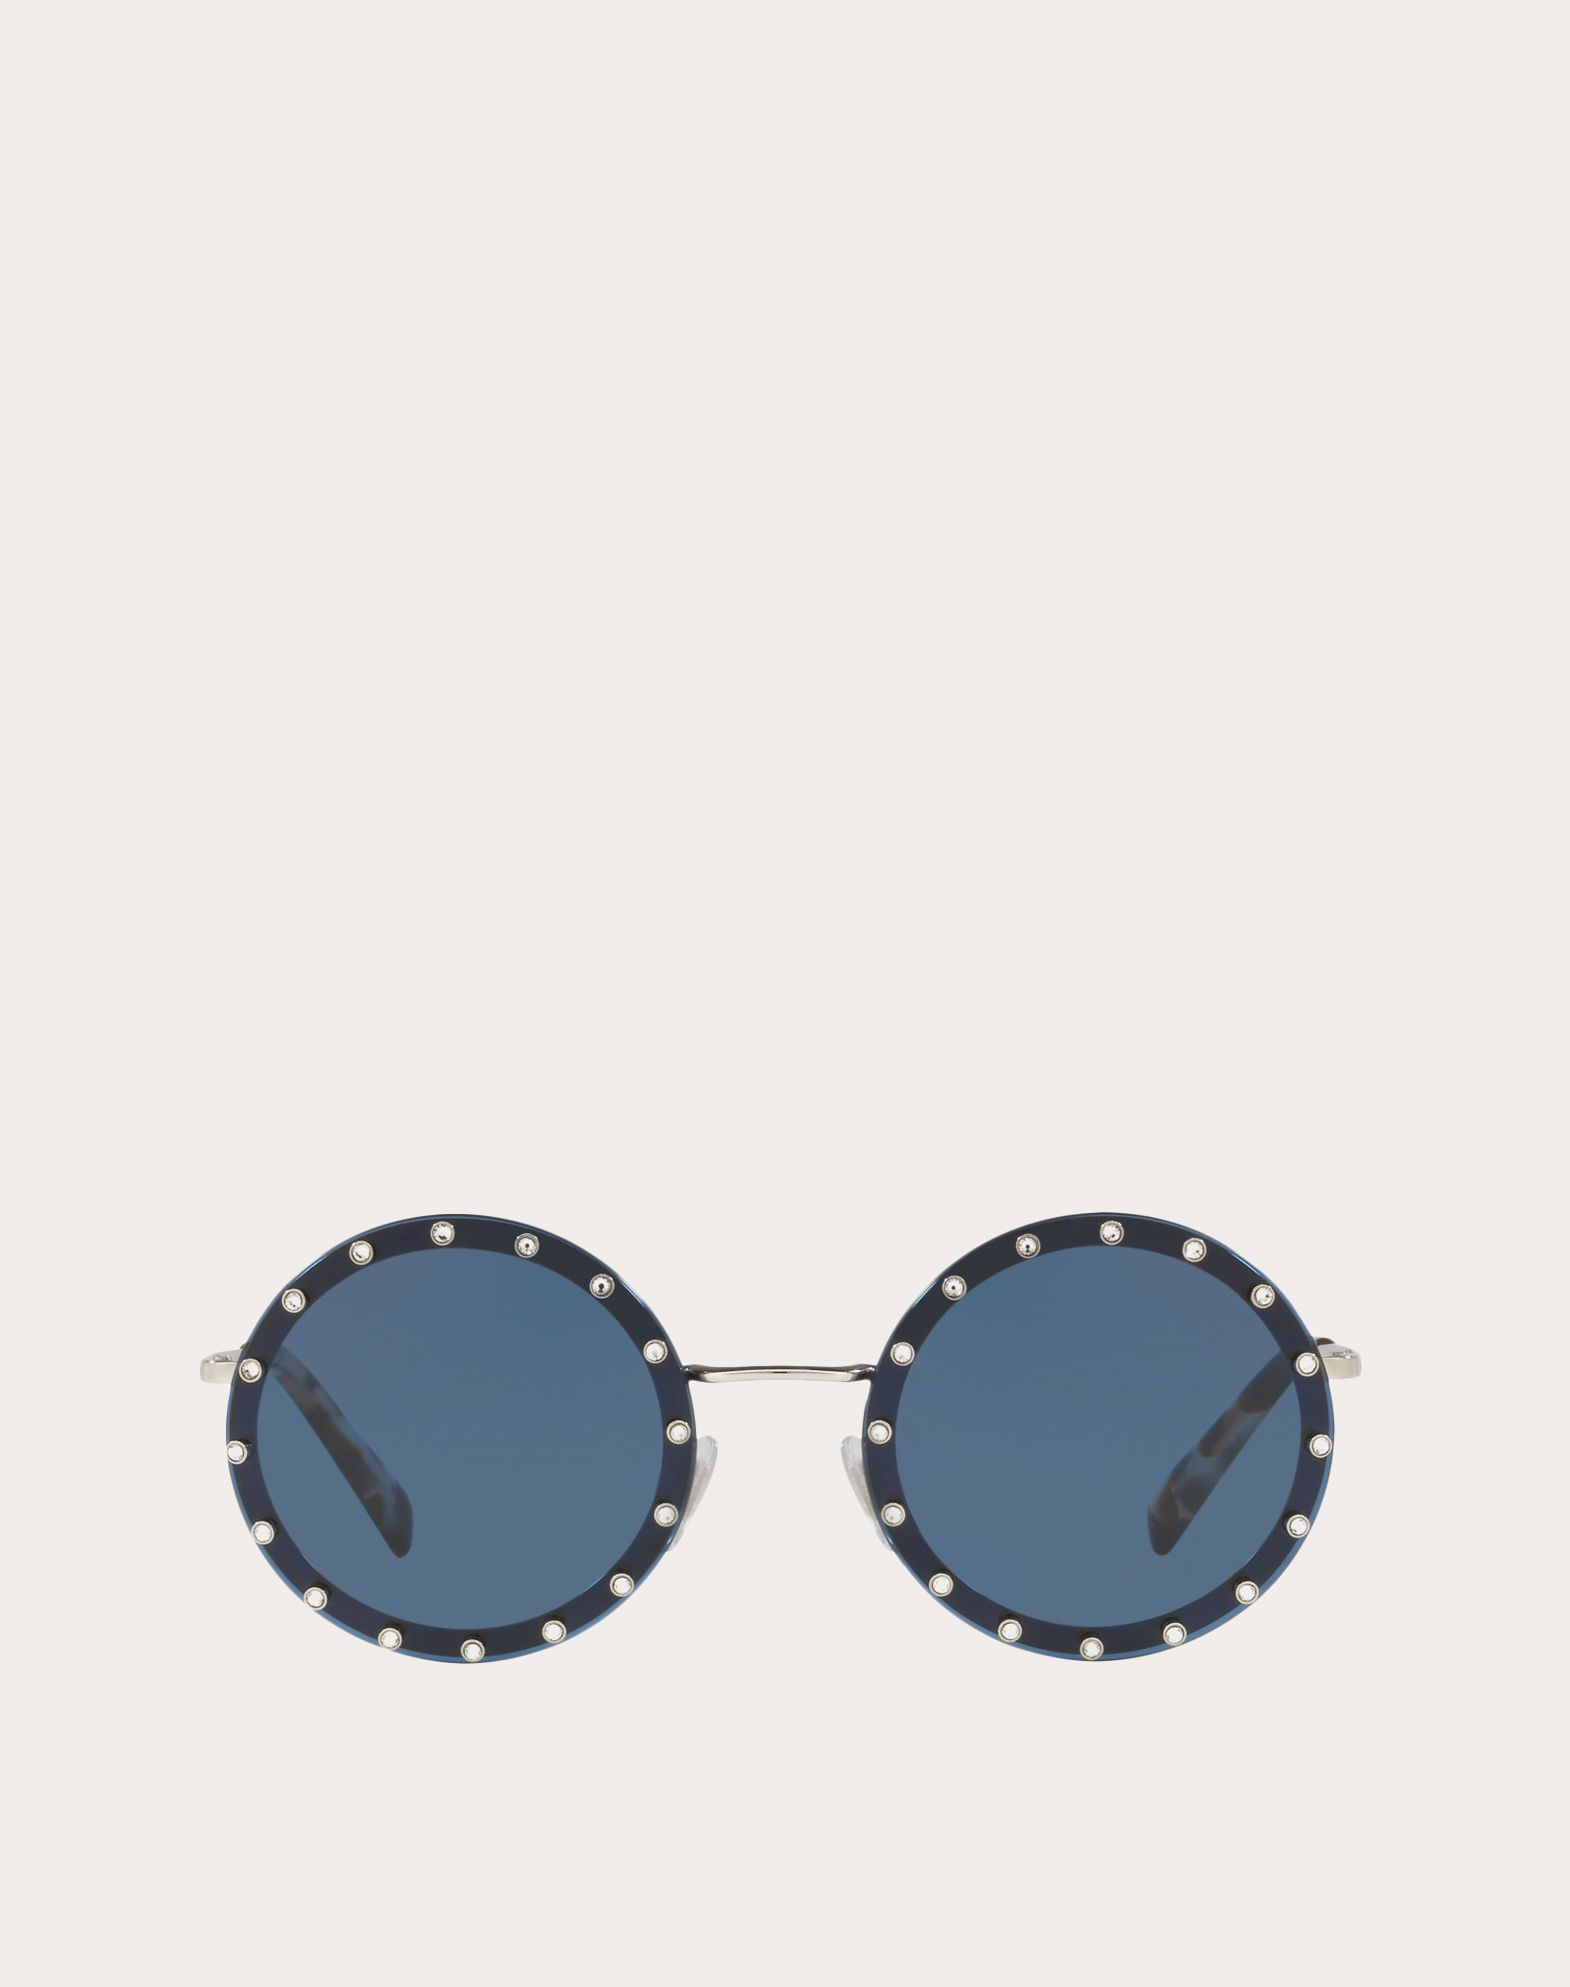 VALENTINO Logo Etchings Solid color Metallic/plastic frame Round lenses  46541589be